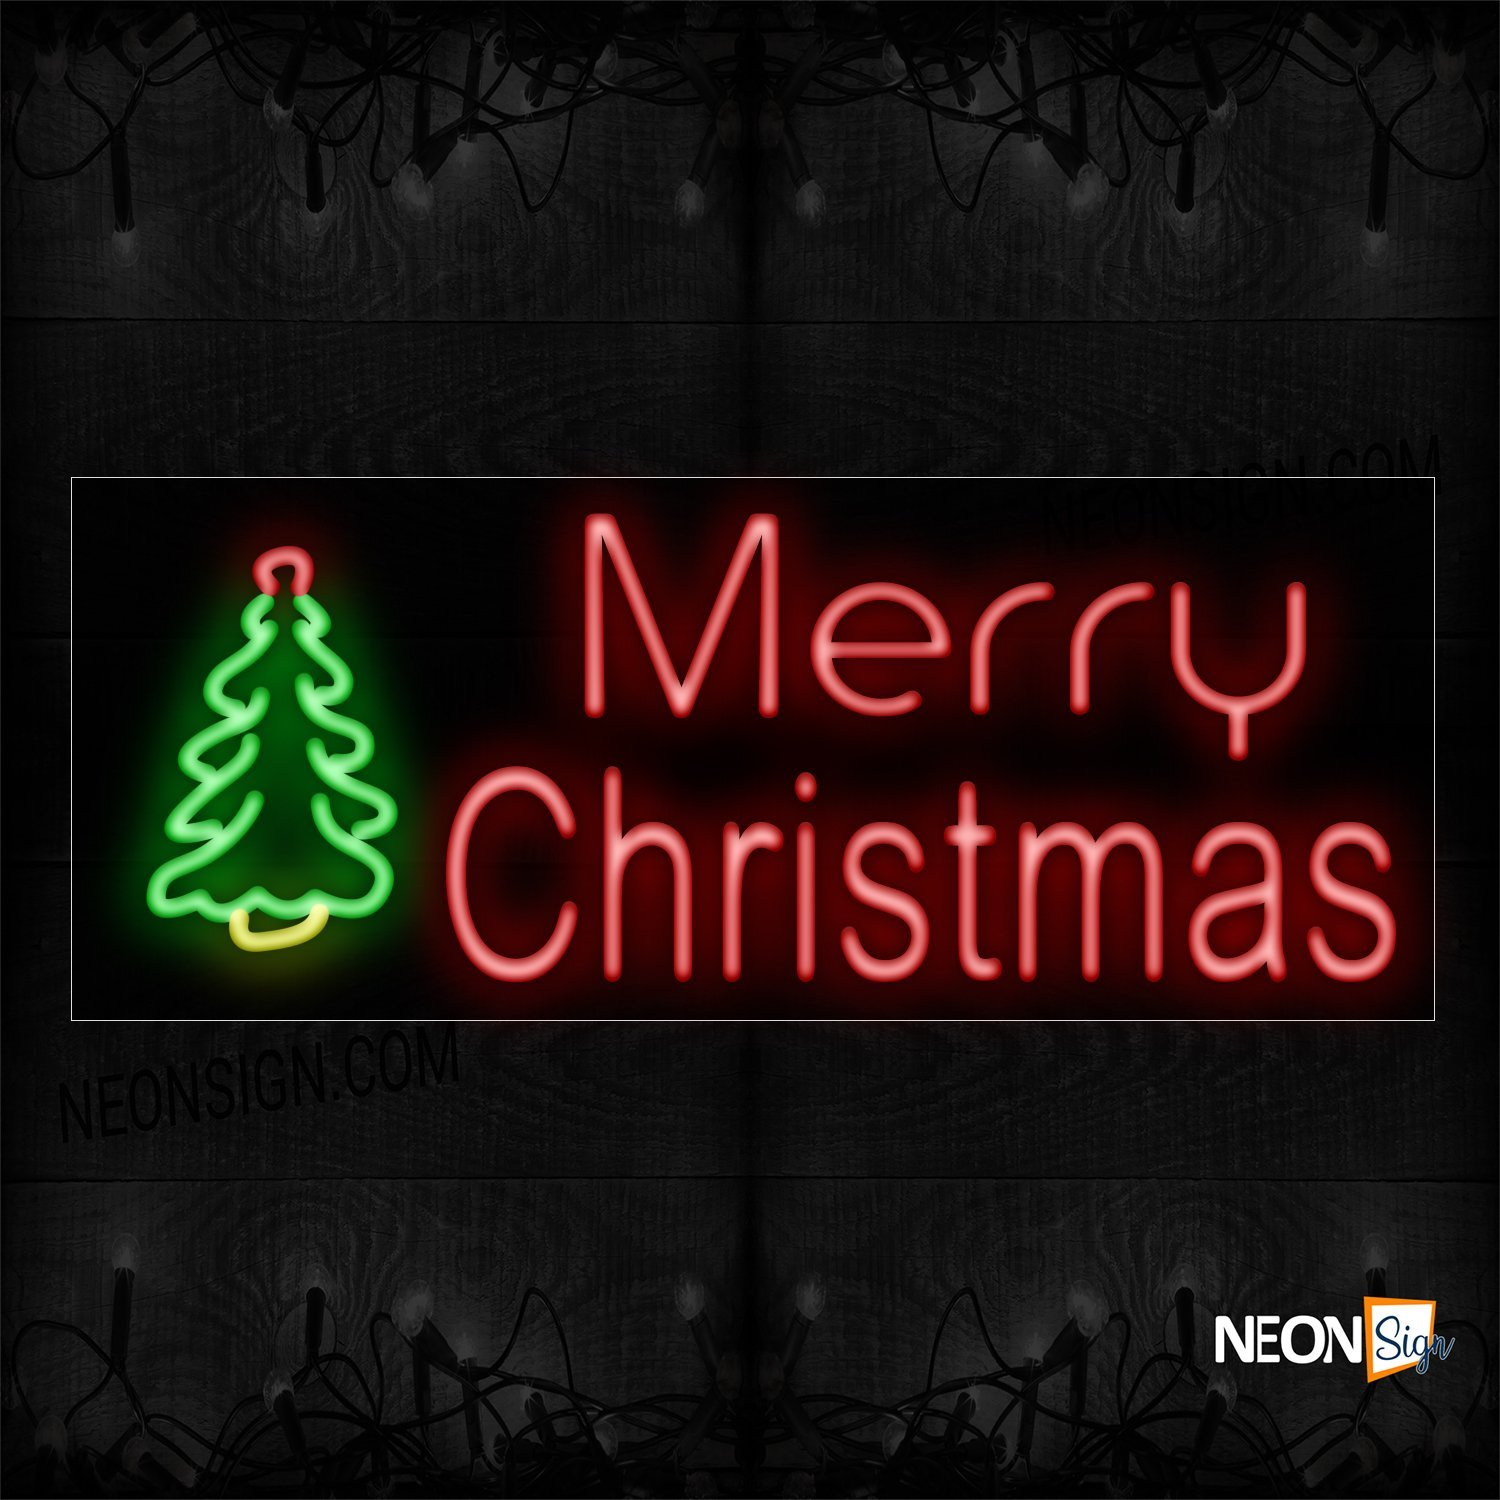 Image of 10836 Merry Christmas With Christmas Tree Logo Neon Sign_13x32 Black Backing